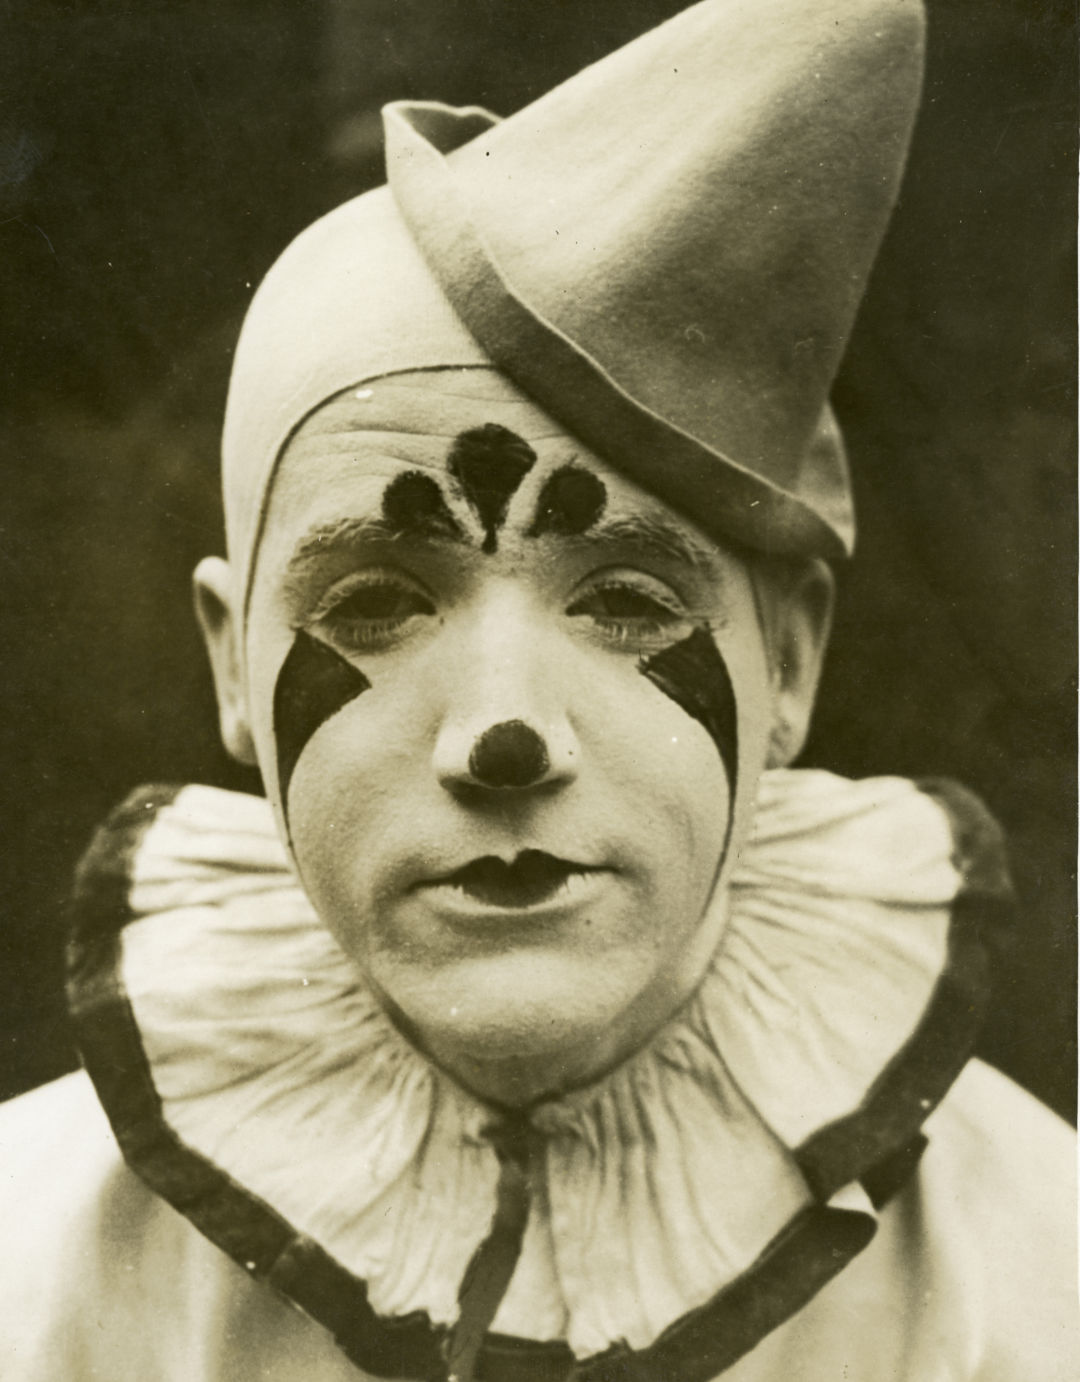 An image from The Ringling's archives